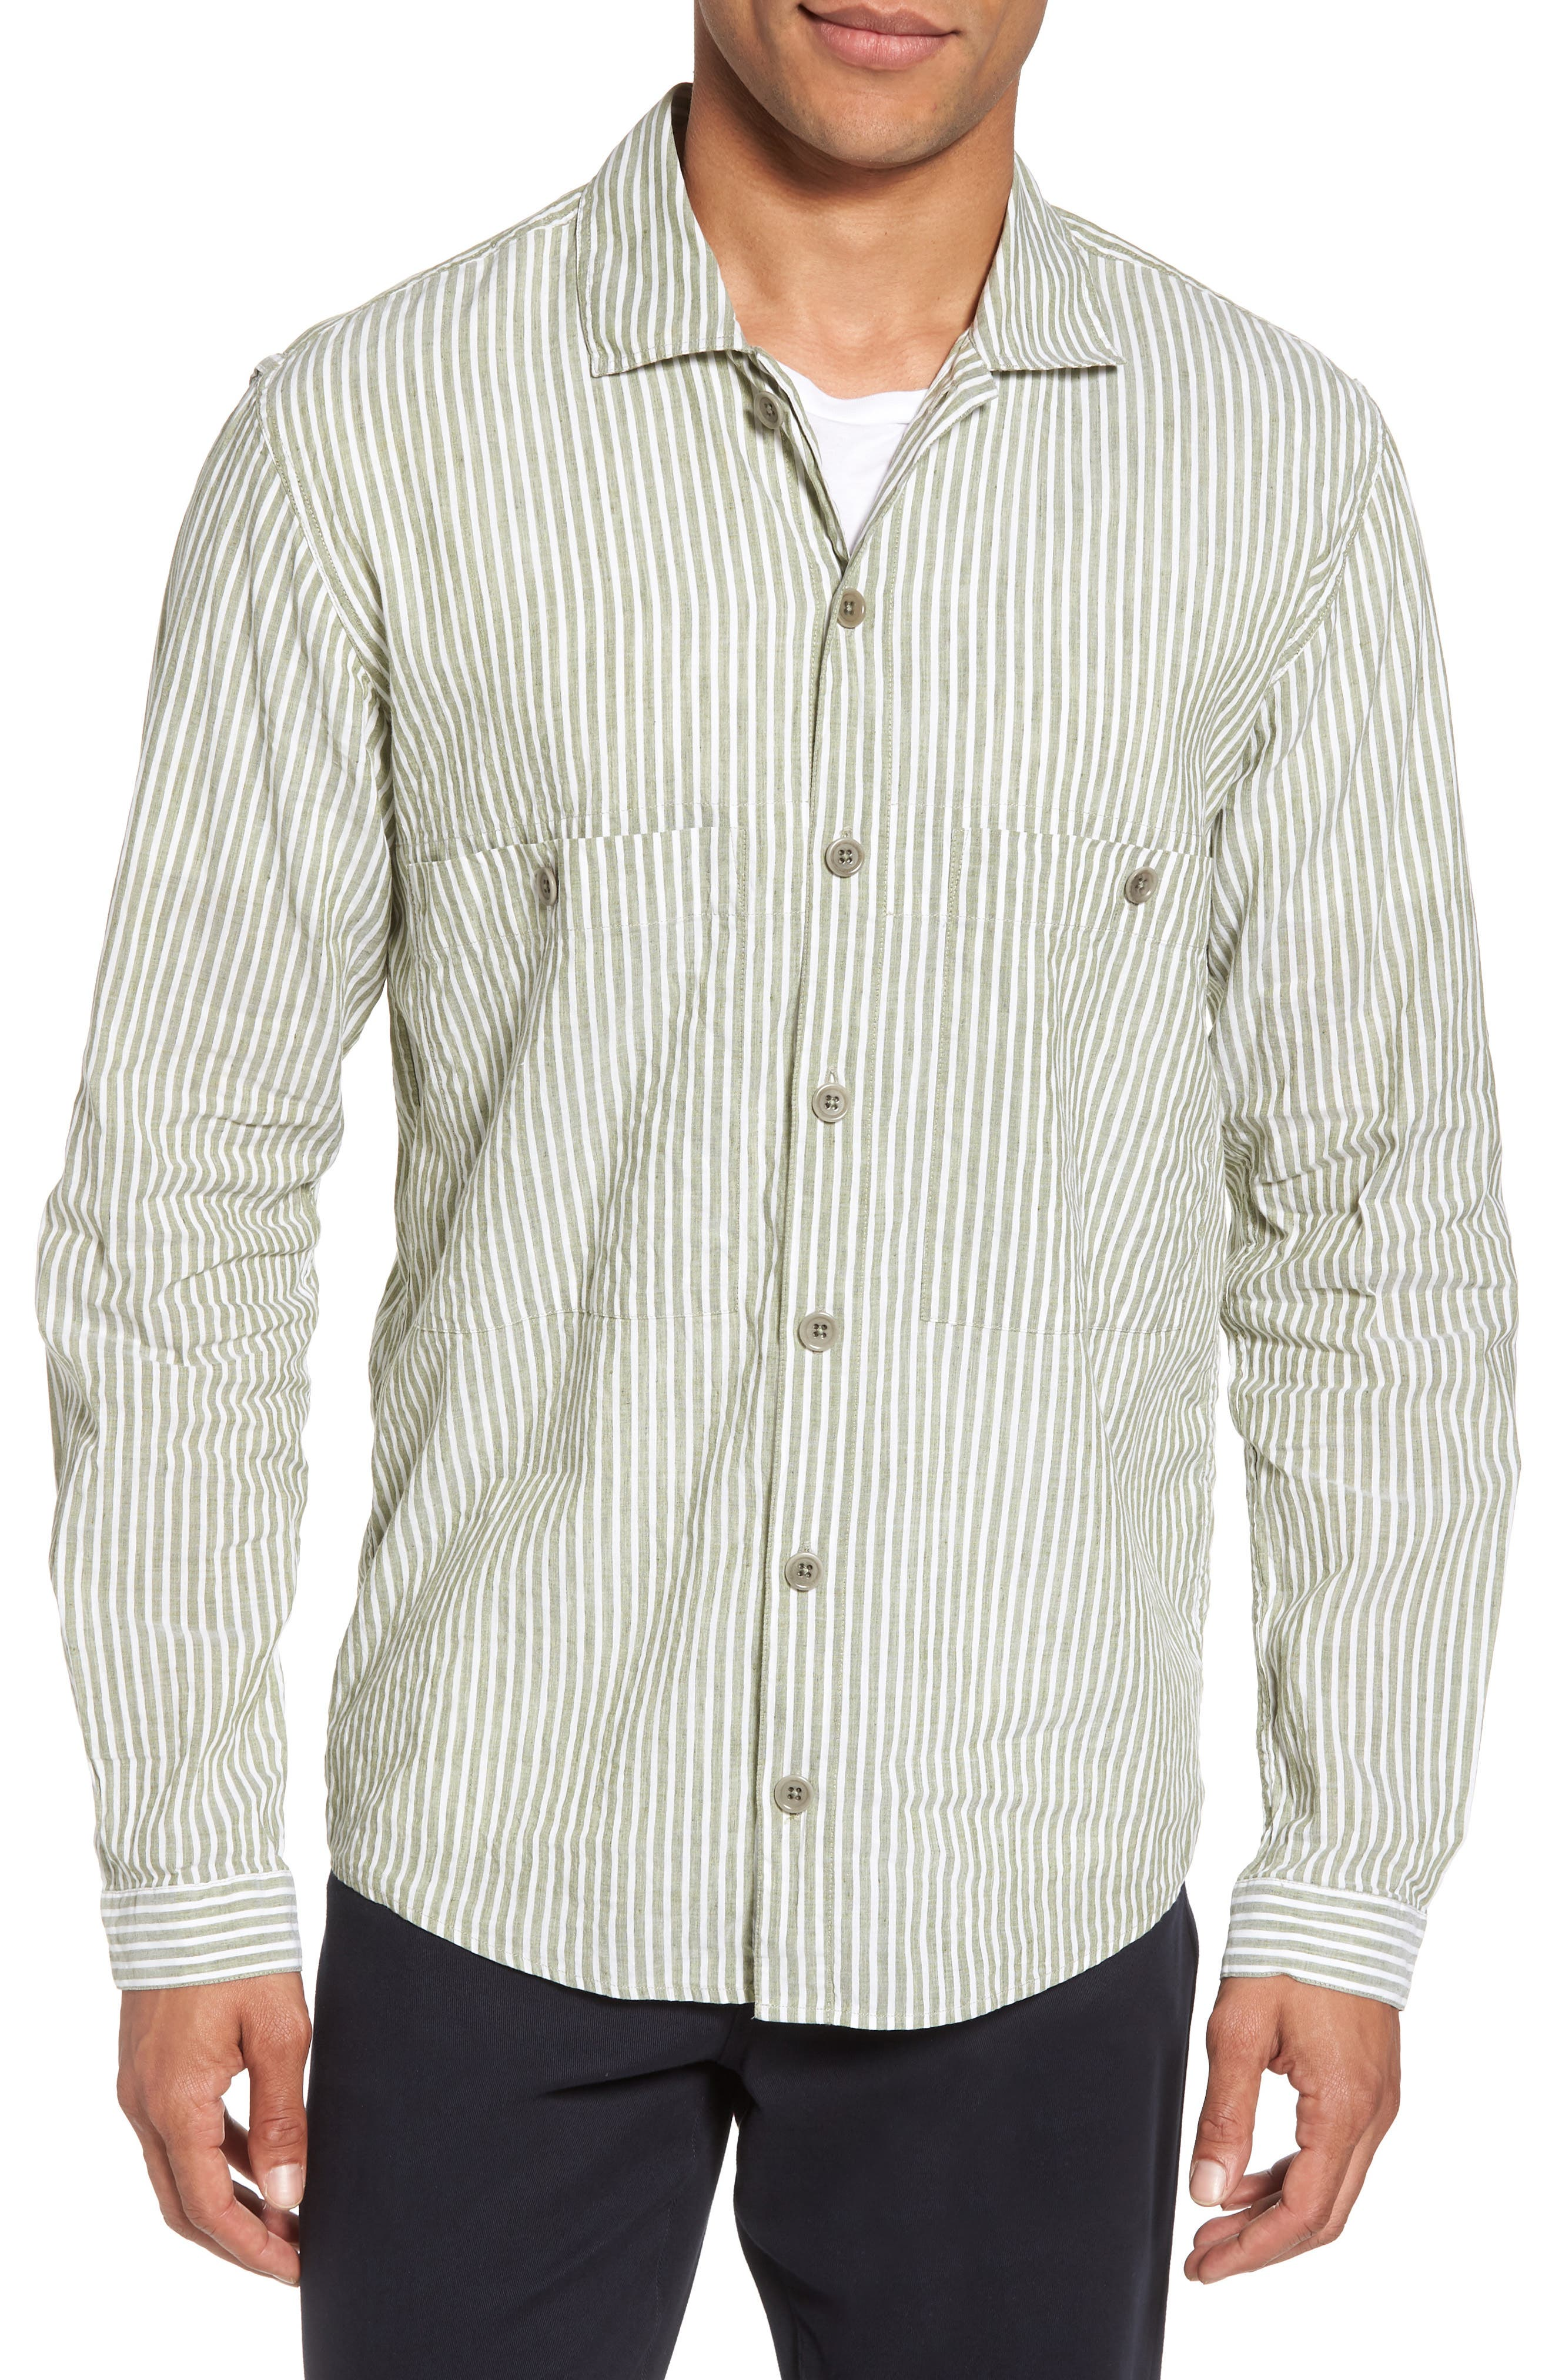 Doc Savage Regular Fit Sport Shirt,                         Main,                         color, 300